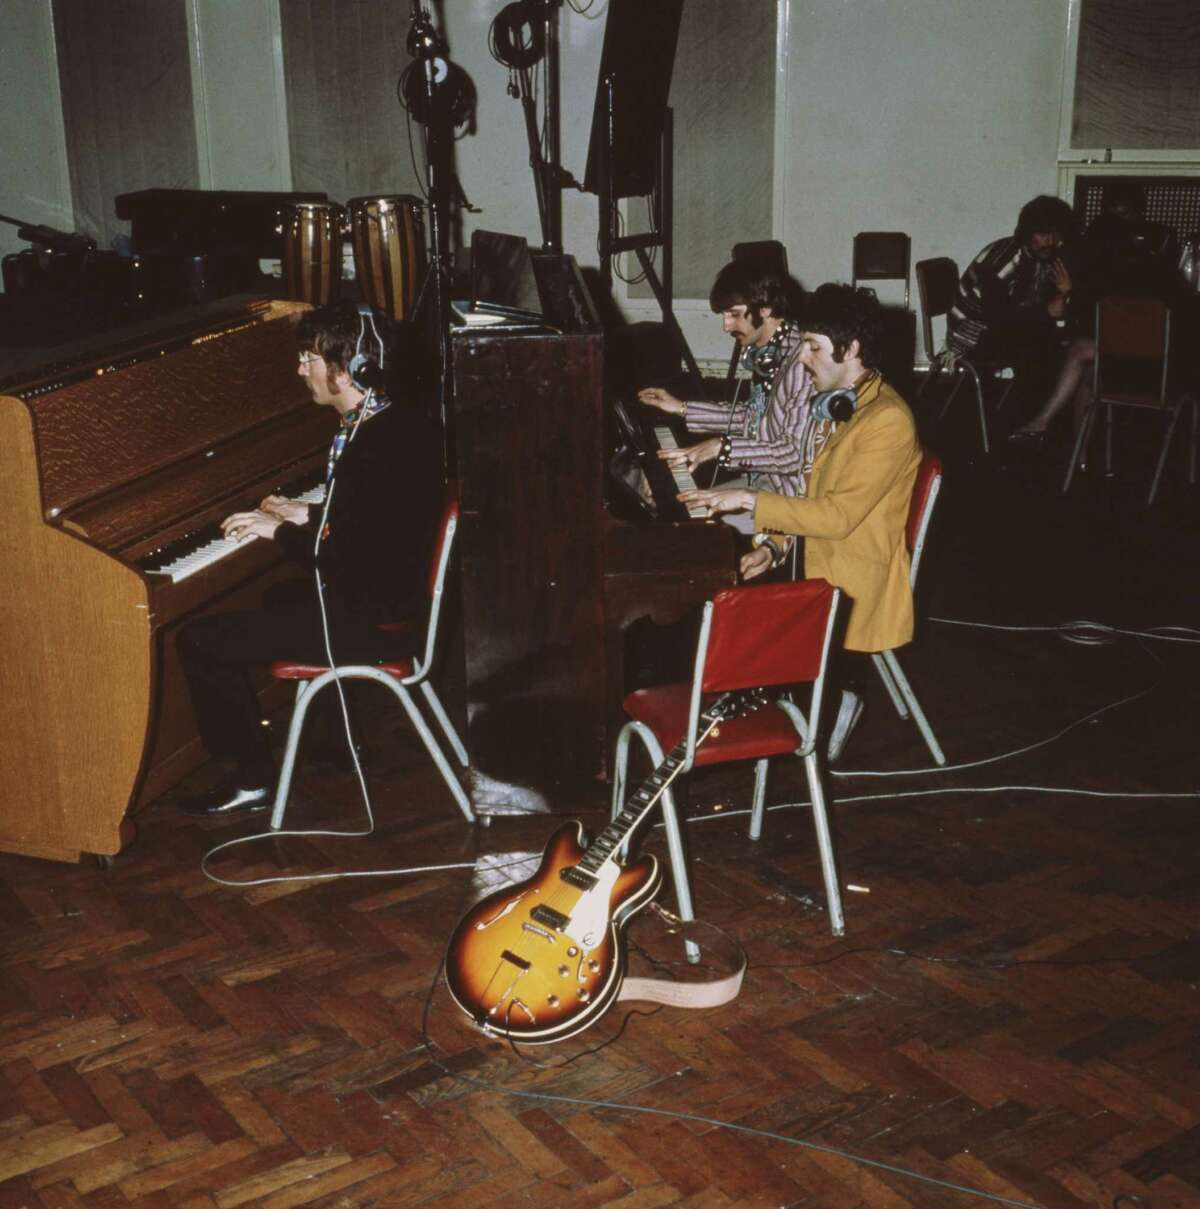 McCartney's decision to add a harmonium (pump organ) which is more prominent during Lennon's famous